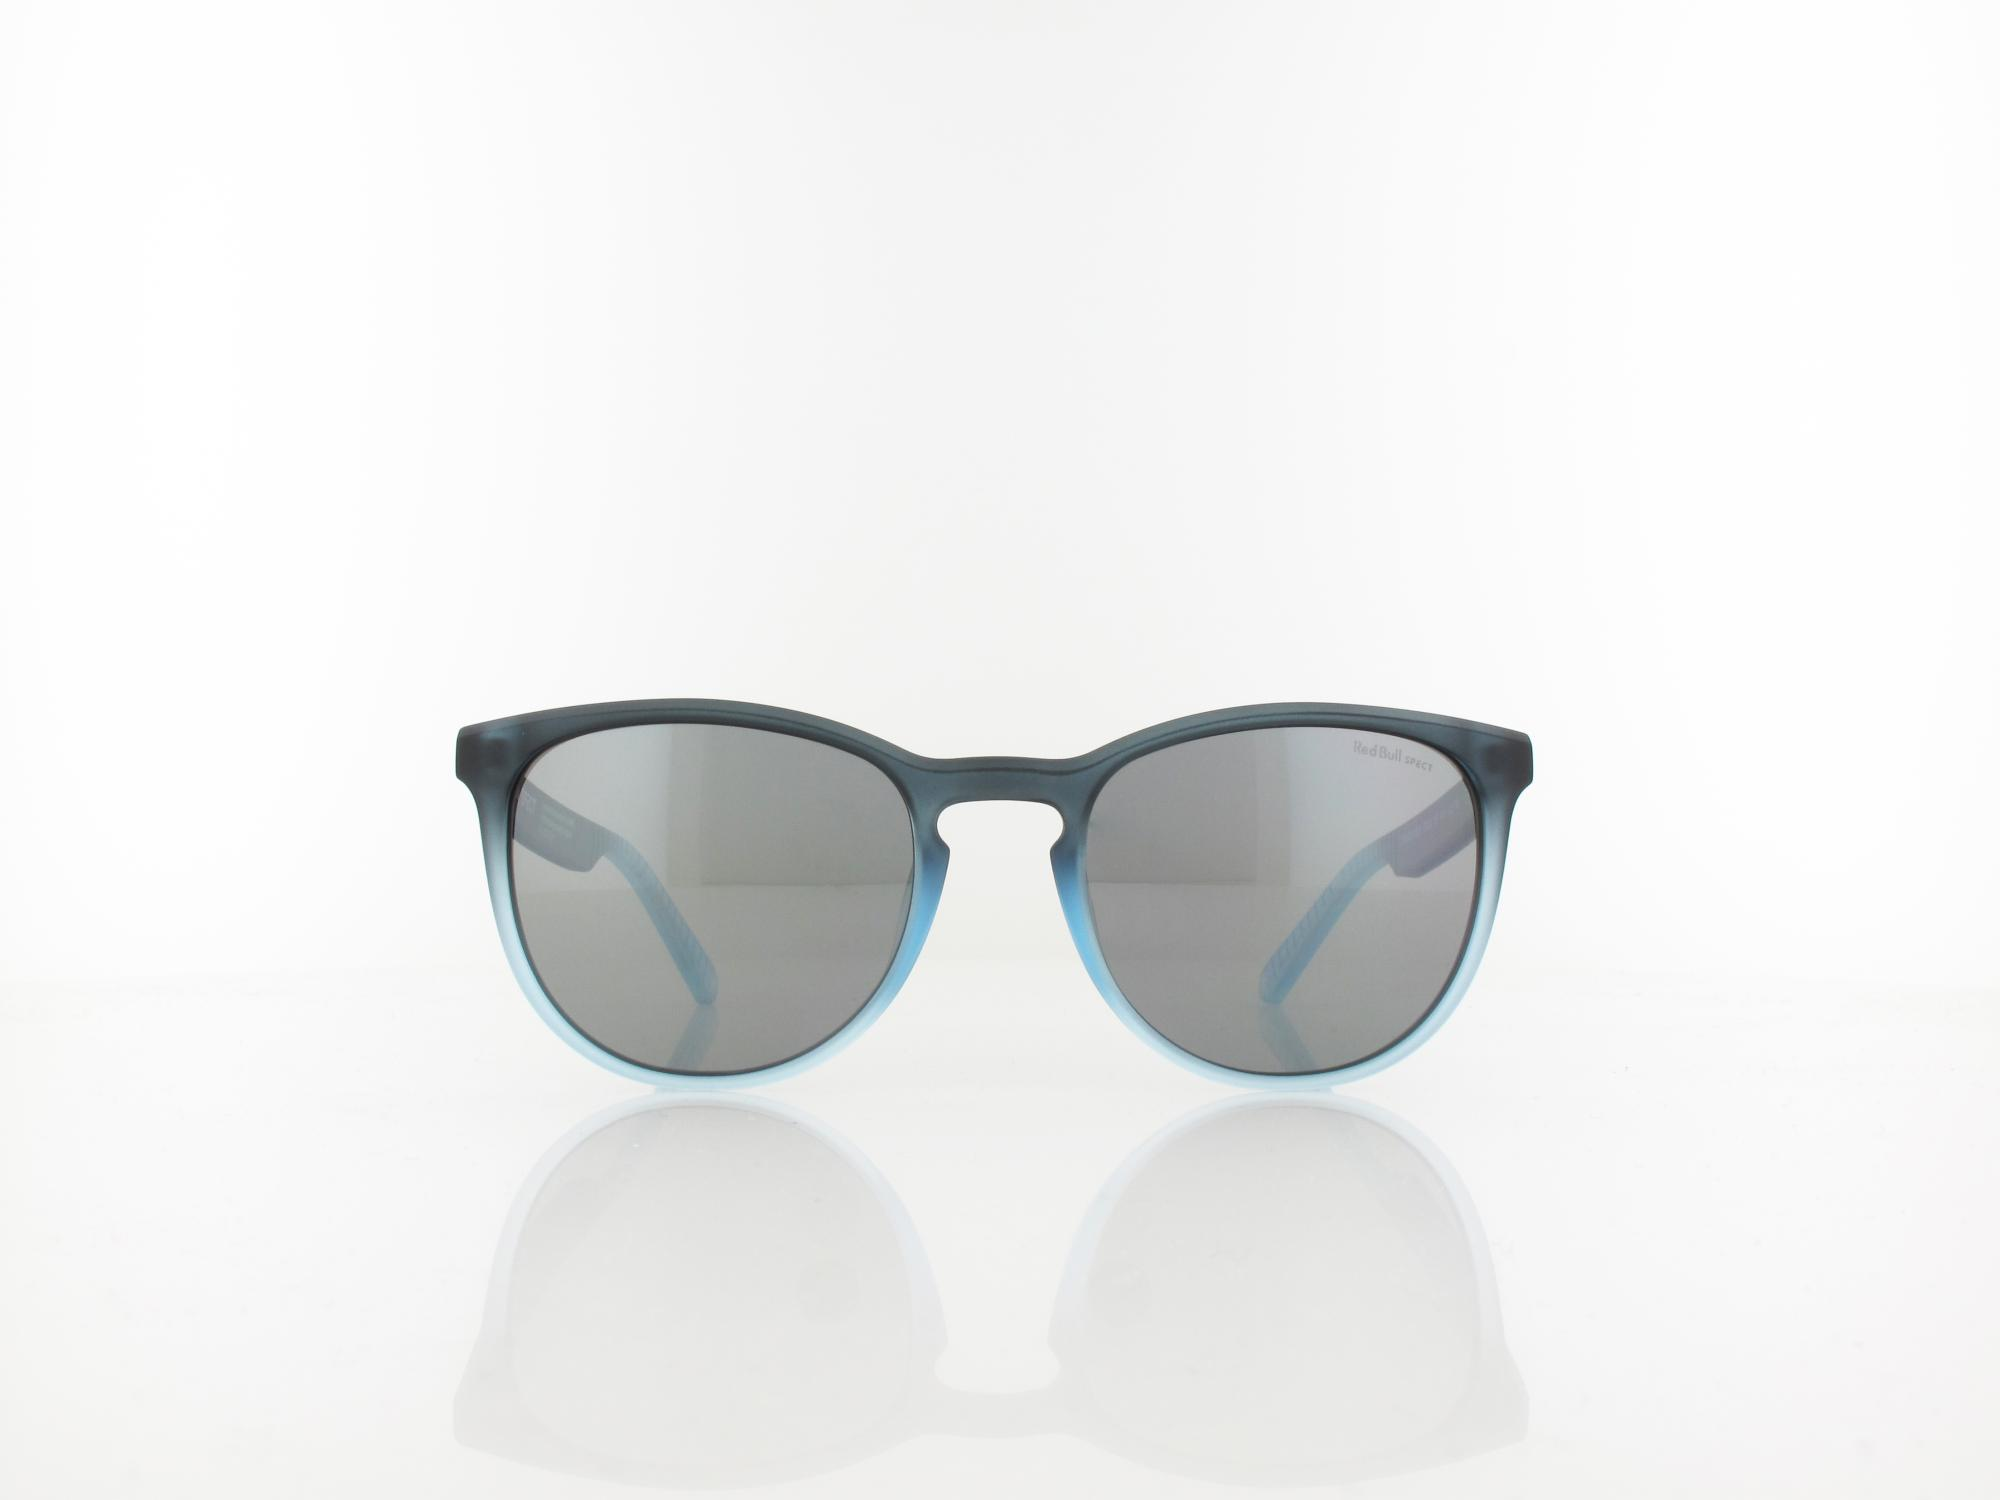 Red Bull SPECT | STEADY 001P 51 | gradient anthracite / smoke with silver flash pol